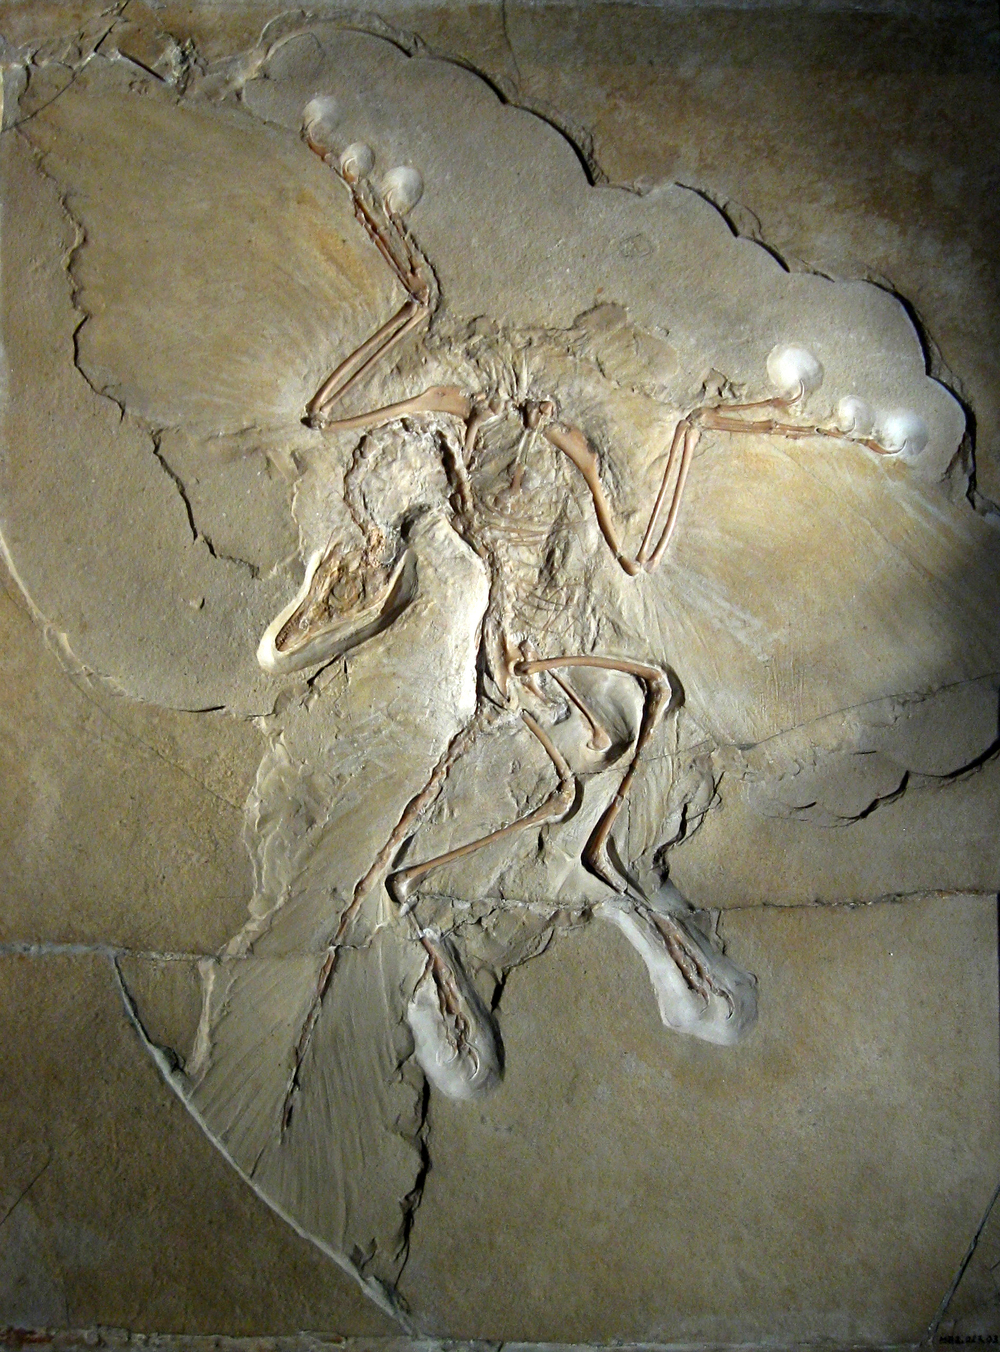 The discovery of  Archaeopteryx  provided early support for Darwin's theory of evolution. Pictured here is the Berlin specimen, discovered in 1874/75.   H. Raab/Wikimedia Commons  (CC BY-SA 3.0)